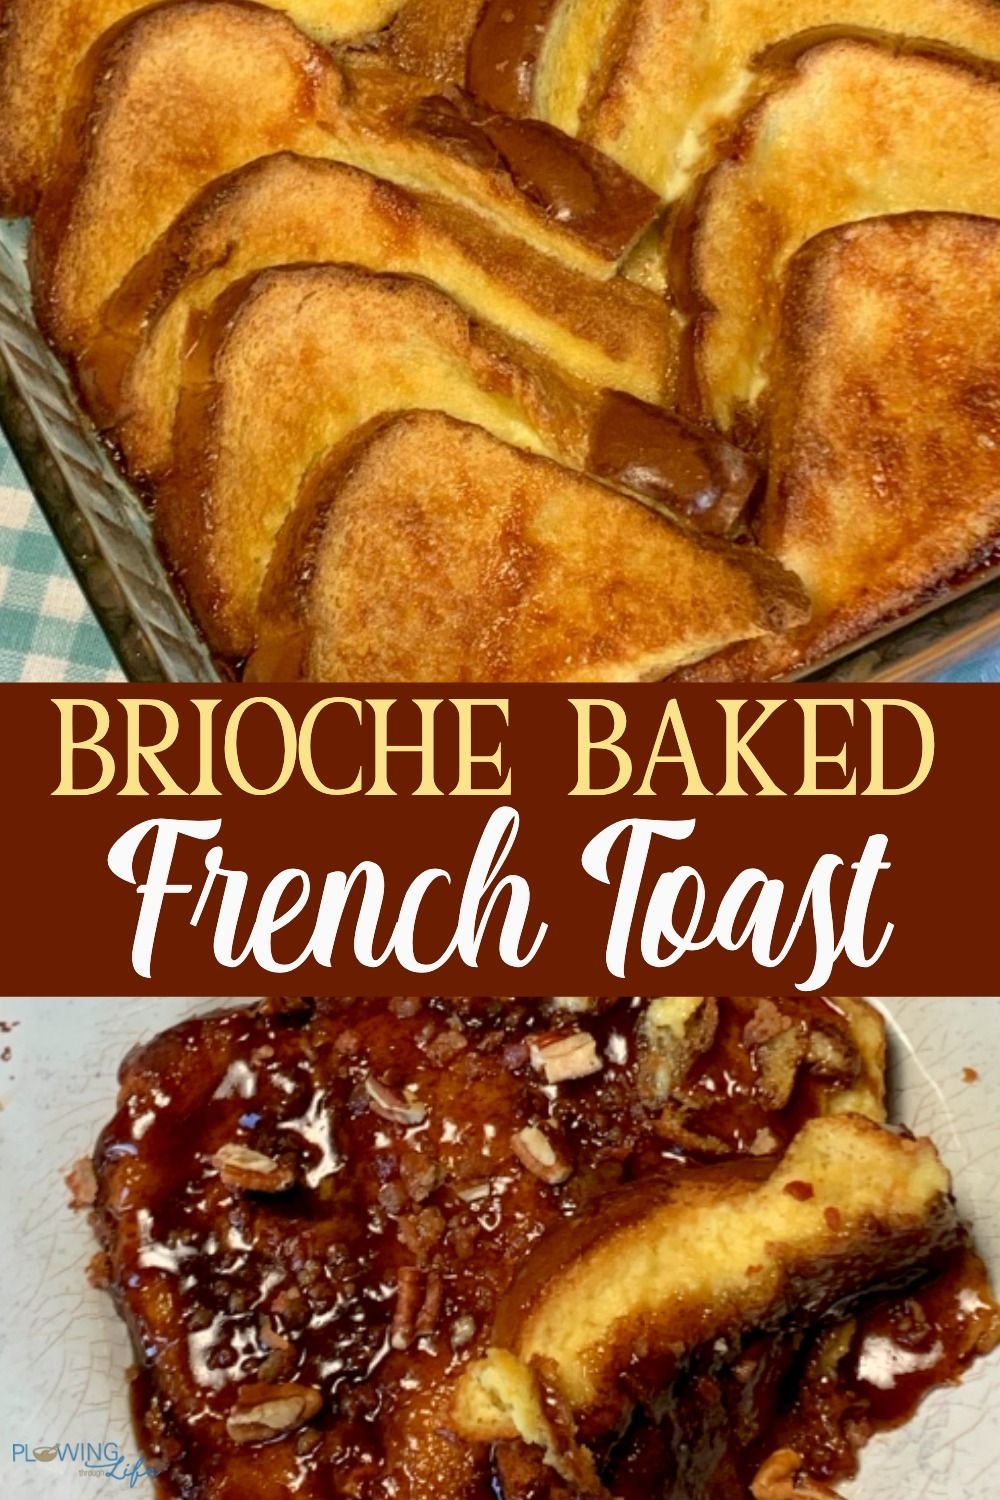 Brioche Baked French Toast Brioche French Toast Brioche French Toast Casserole French Toast Casserole Easy